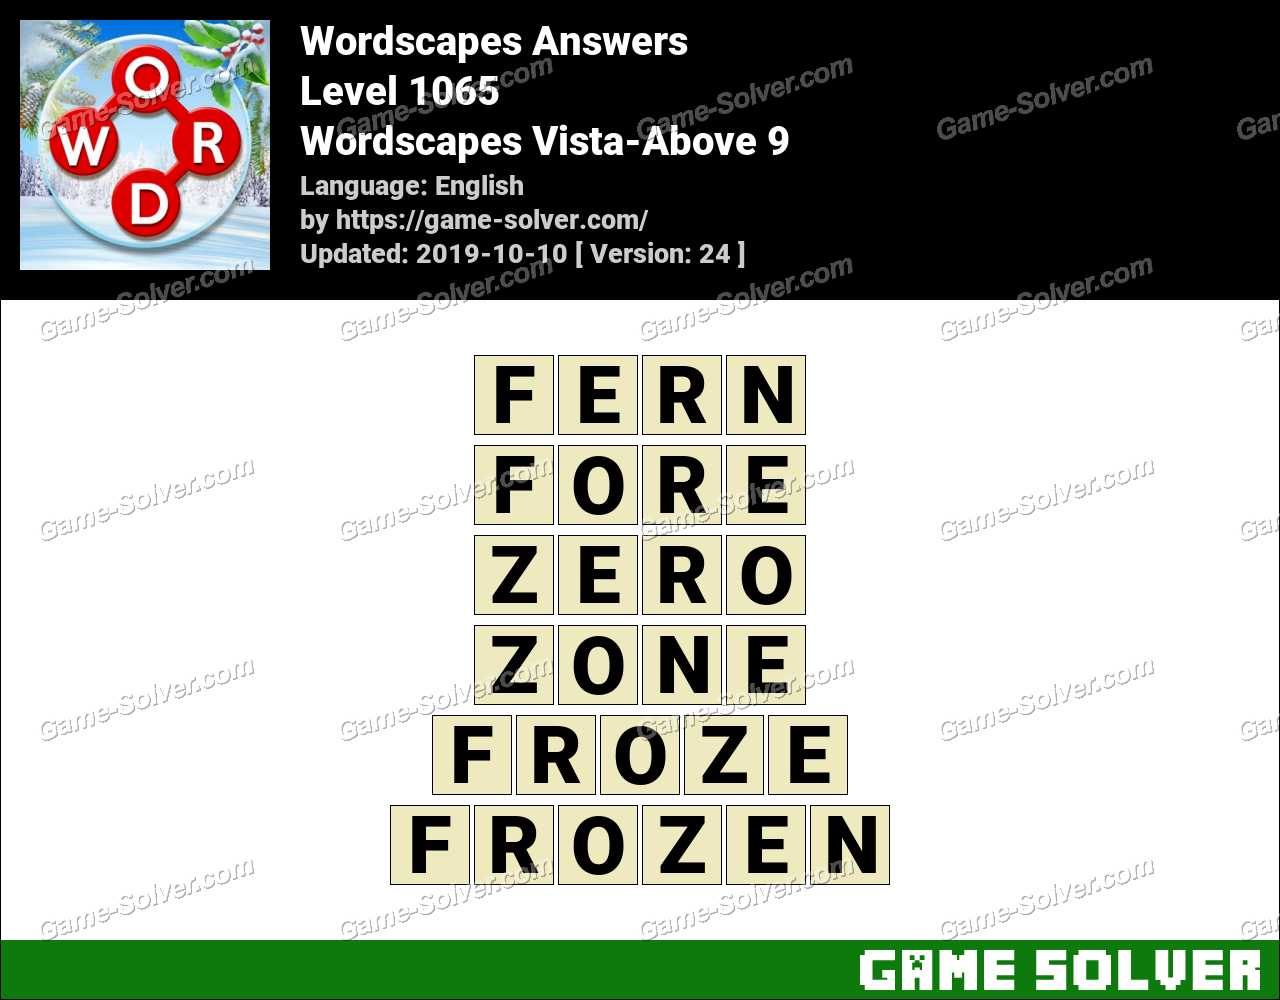 Wordscapes Vista-Above 9 Answers